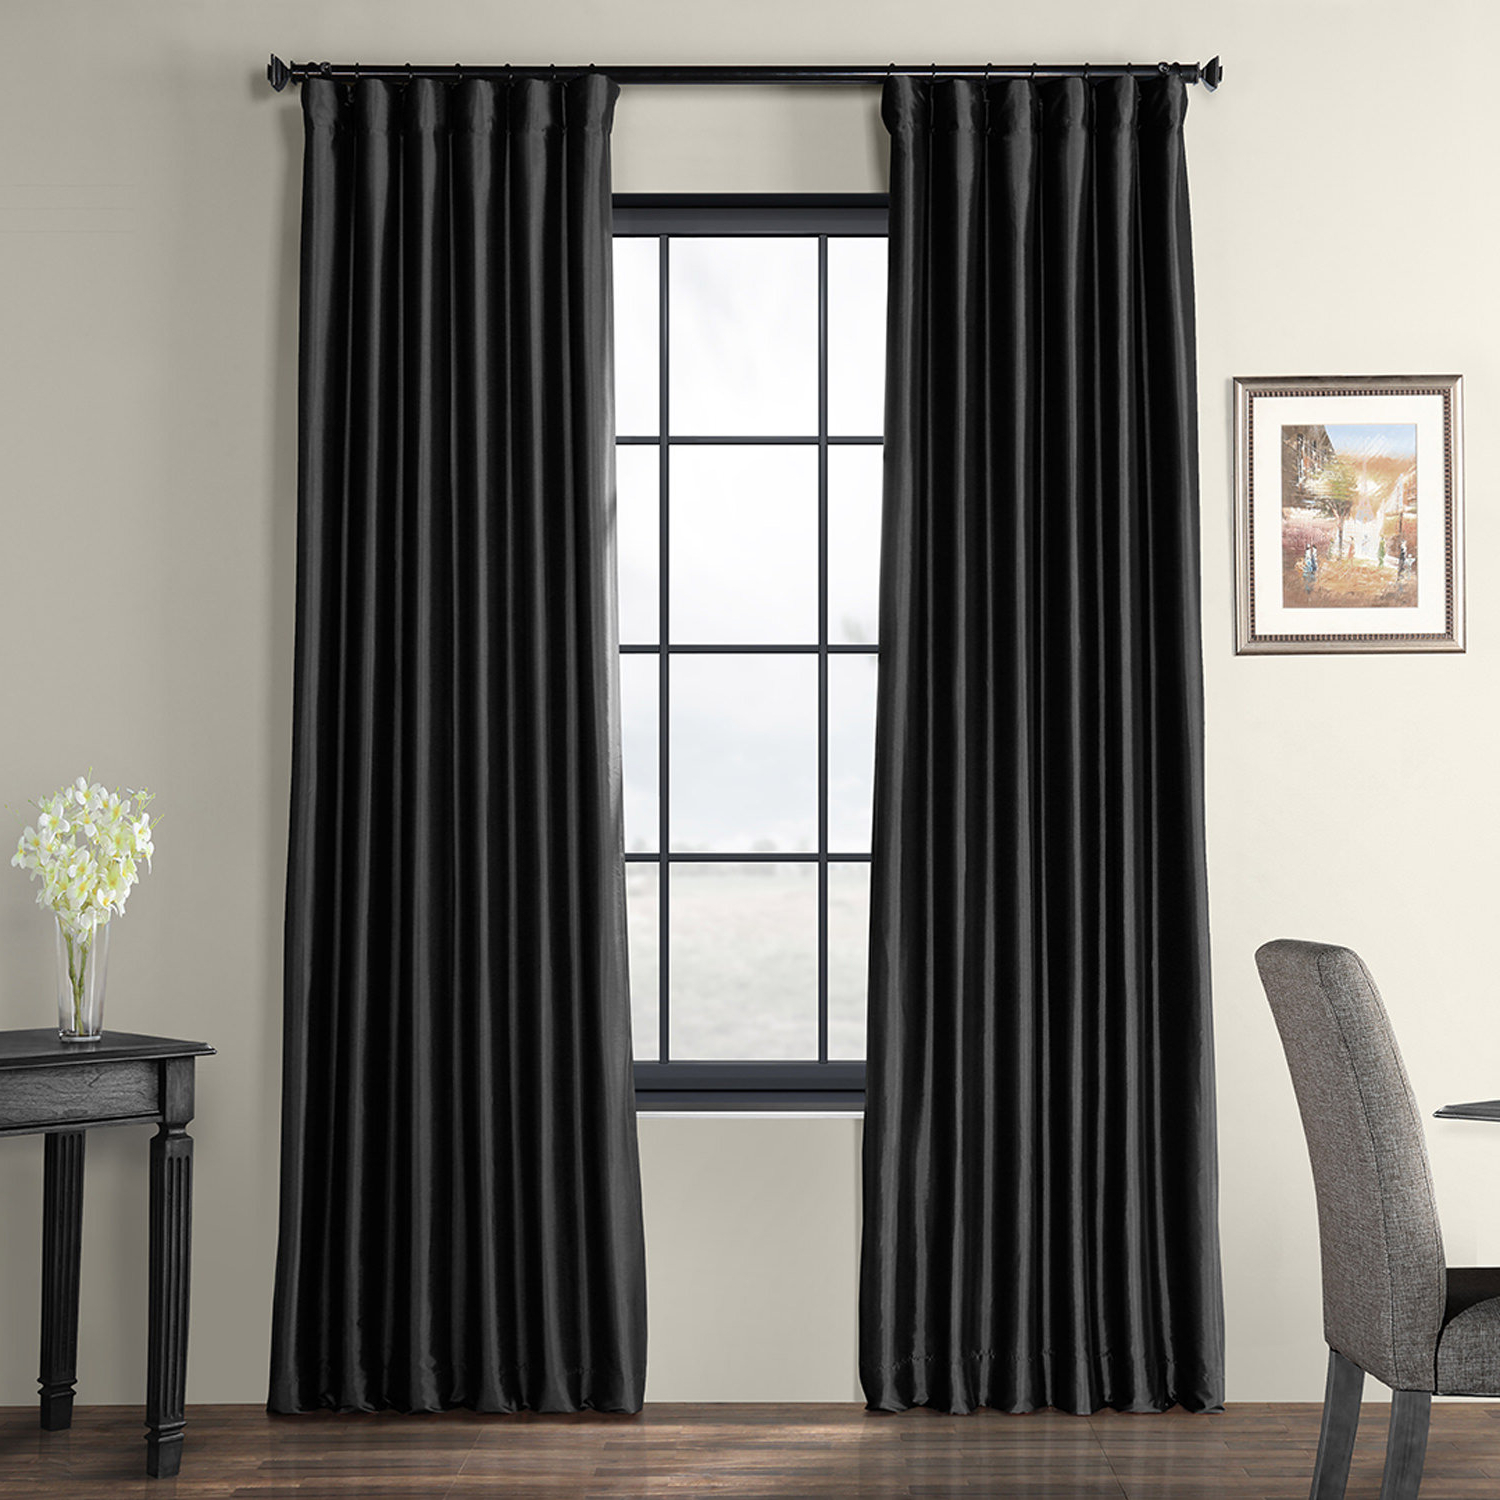 Trendy Lochleven Faux Silk Taffeta Solid Room Polyester Darkening Single Curtain Panel For Solid Faux Silk Taffeta Graphite Single Curtain Panels (View 5 of 20)